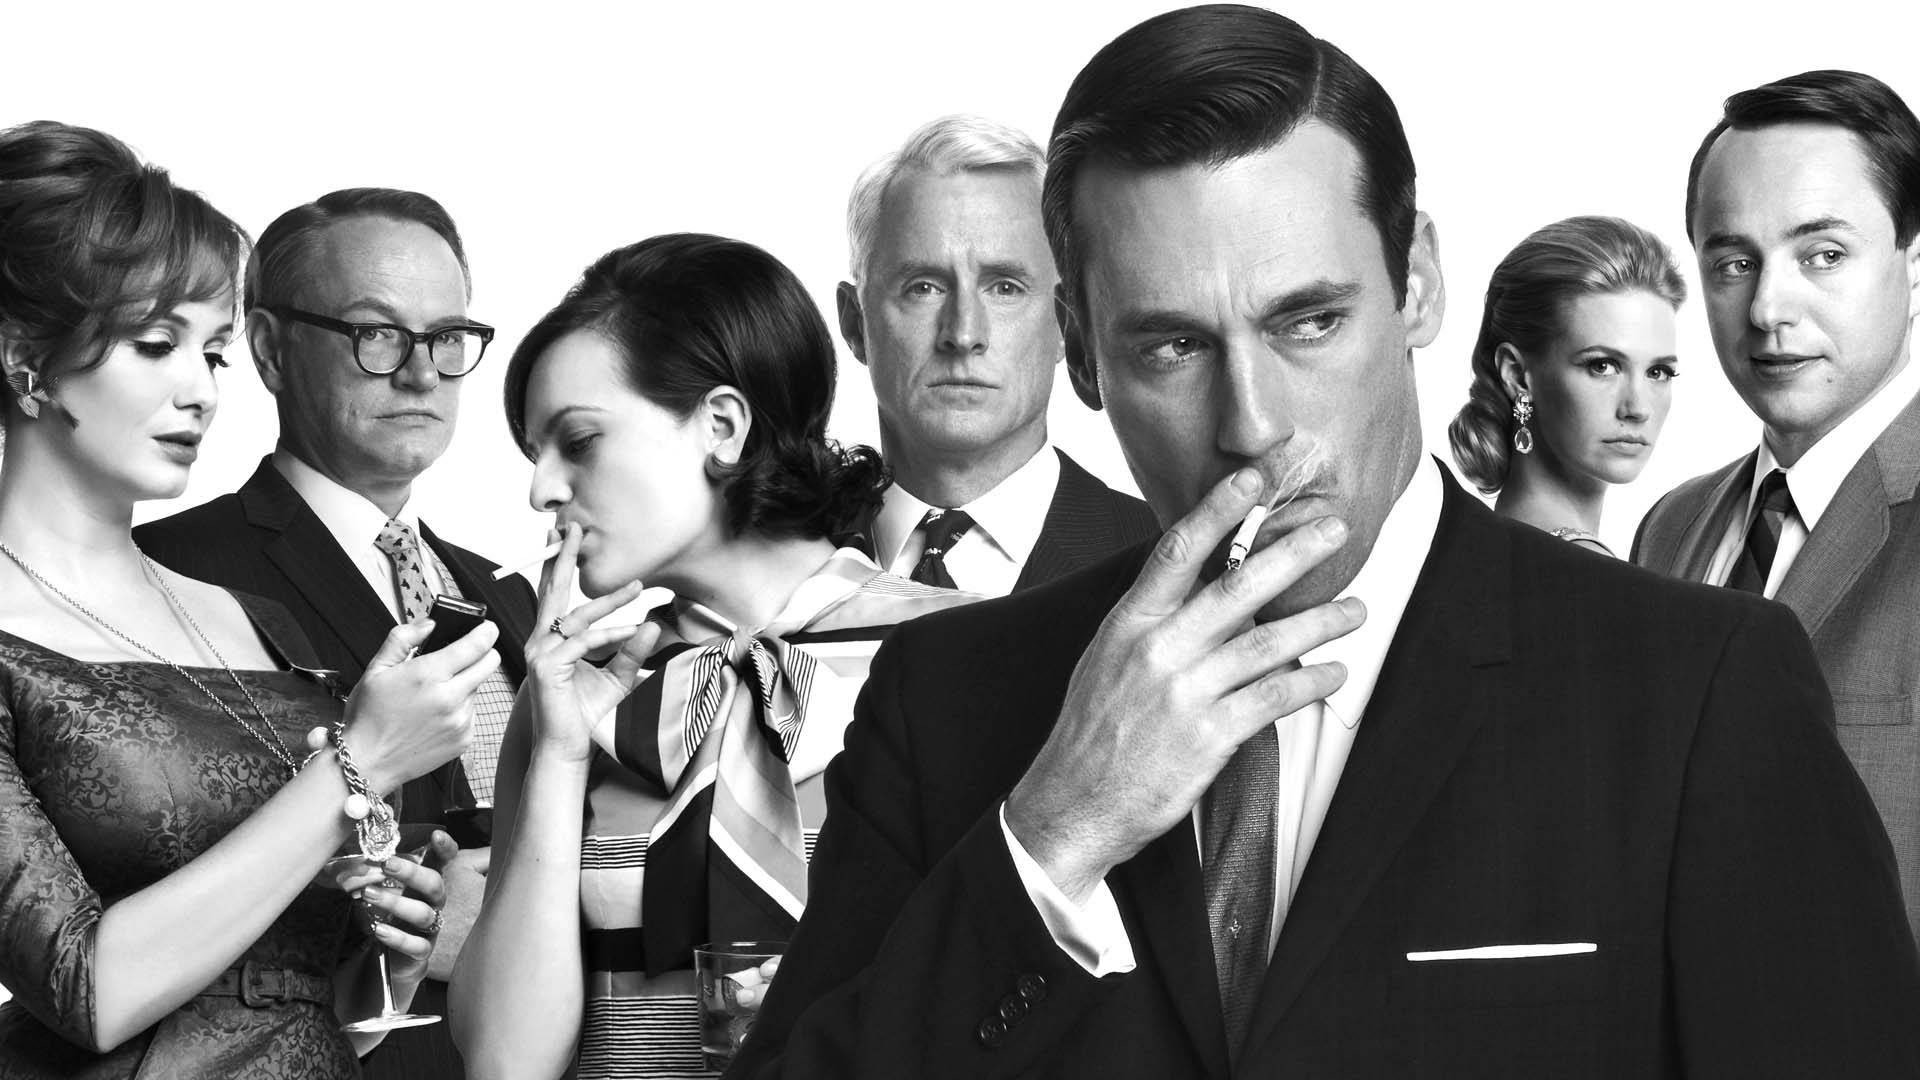 1920x1080 Mad Men, Smoking, Don Draper Wallpapers HD / Desktop and Mobile Backgrounds